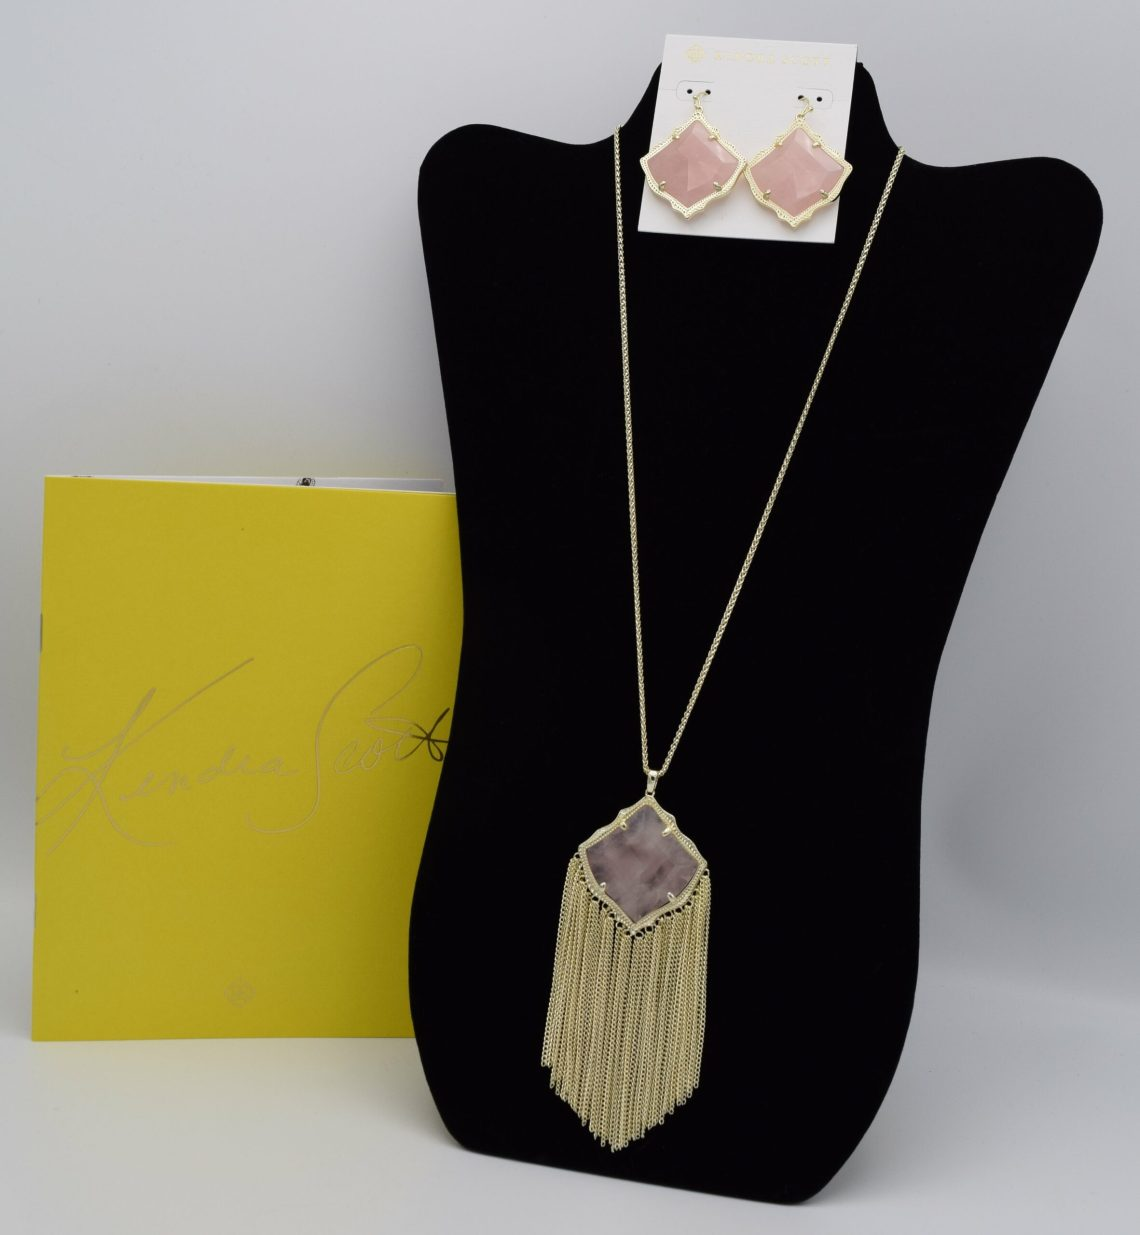 Kendra Scott Necklace and Earrings Set Image